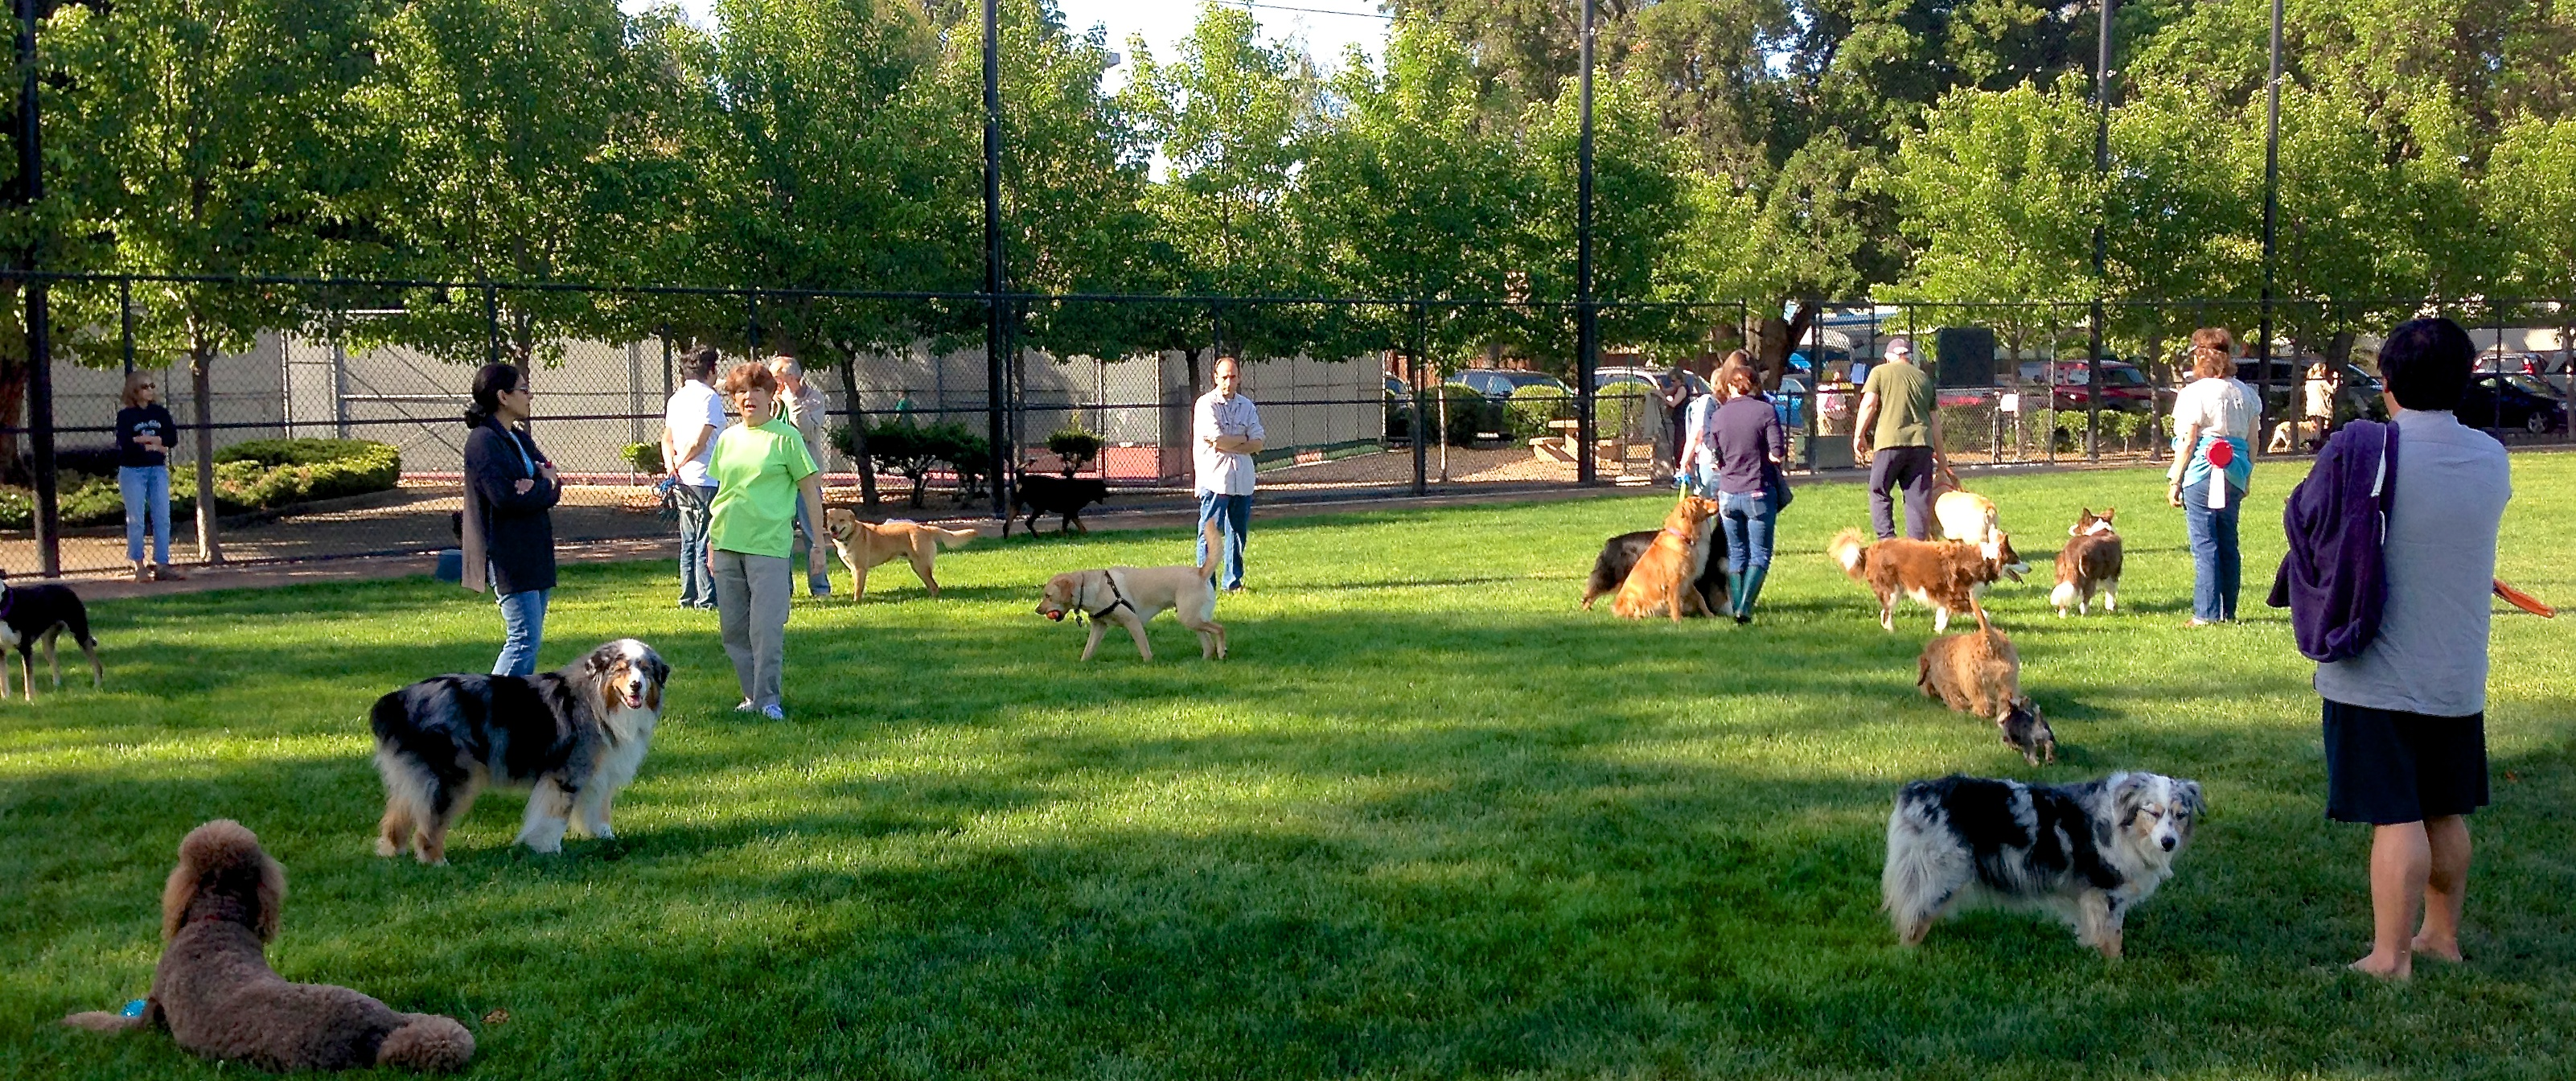 off leash dog park at Nealon Park in Menlo Park